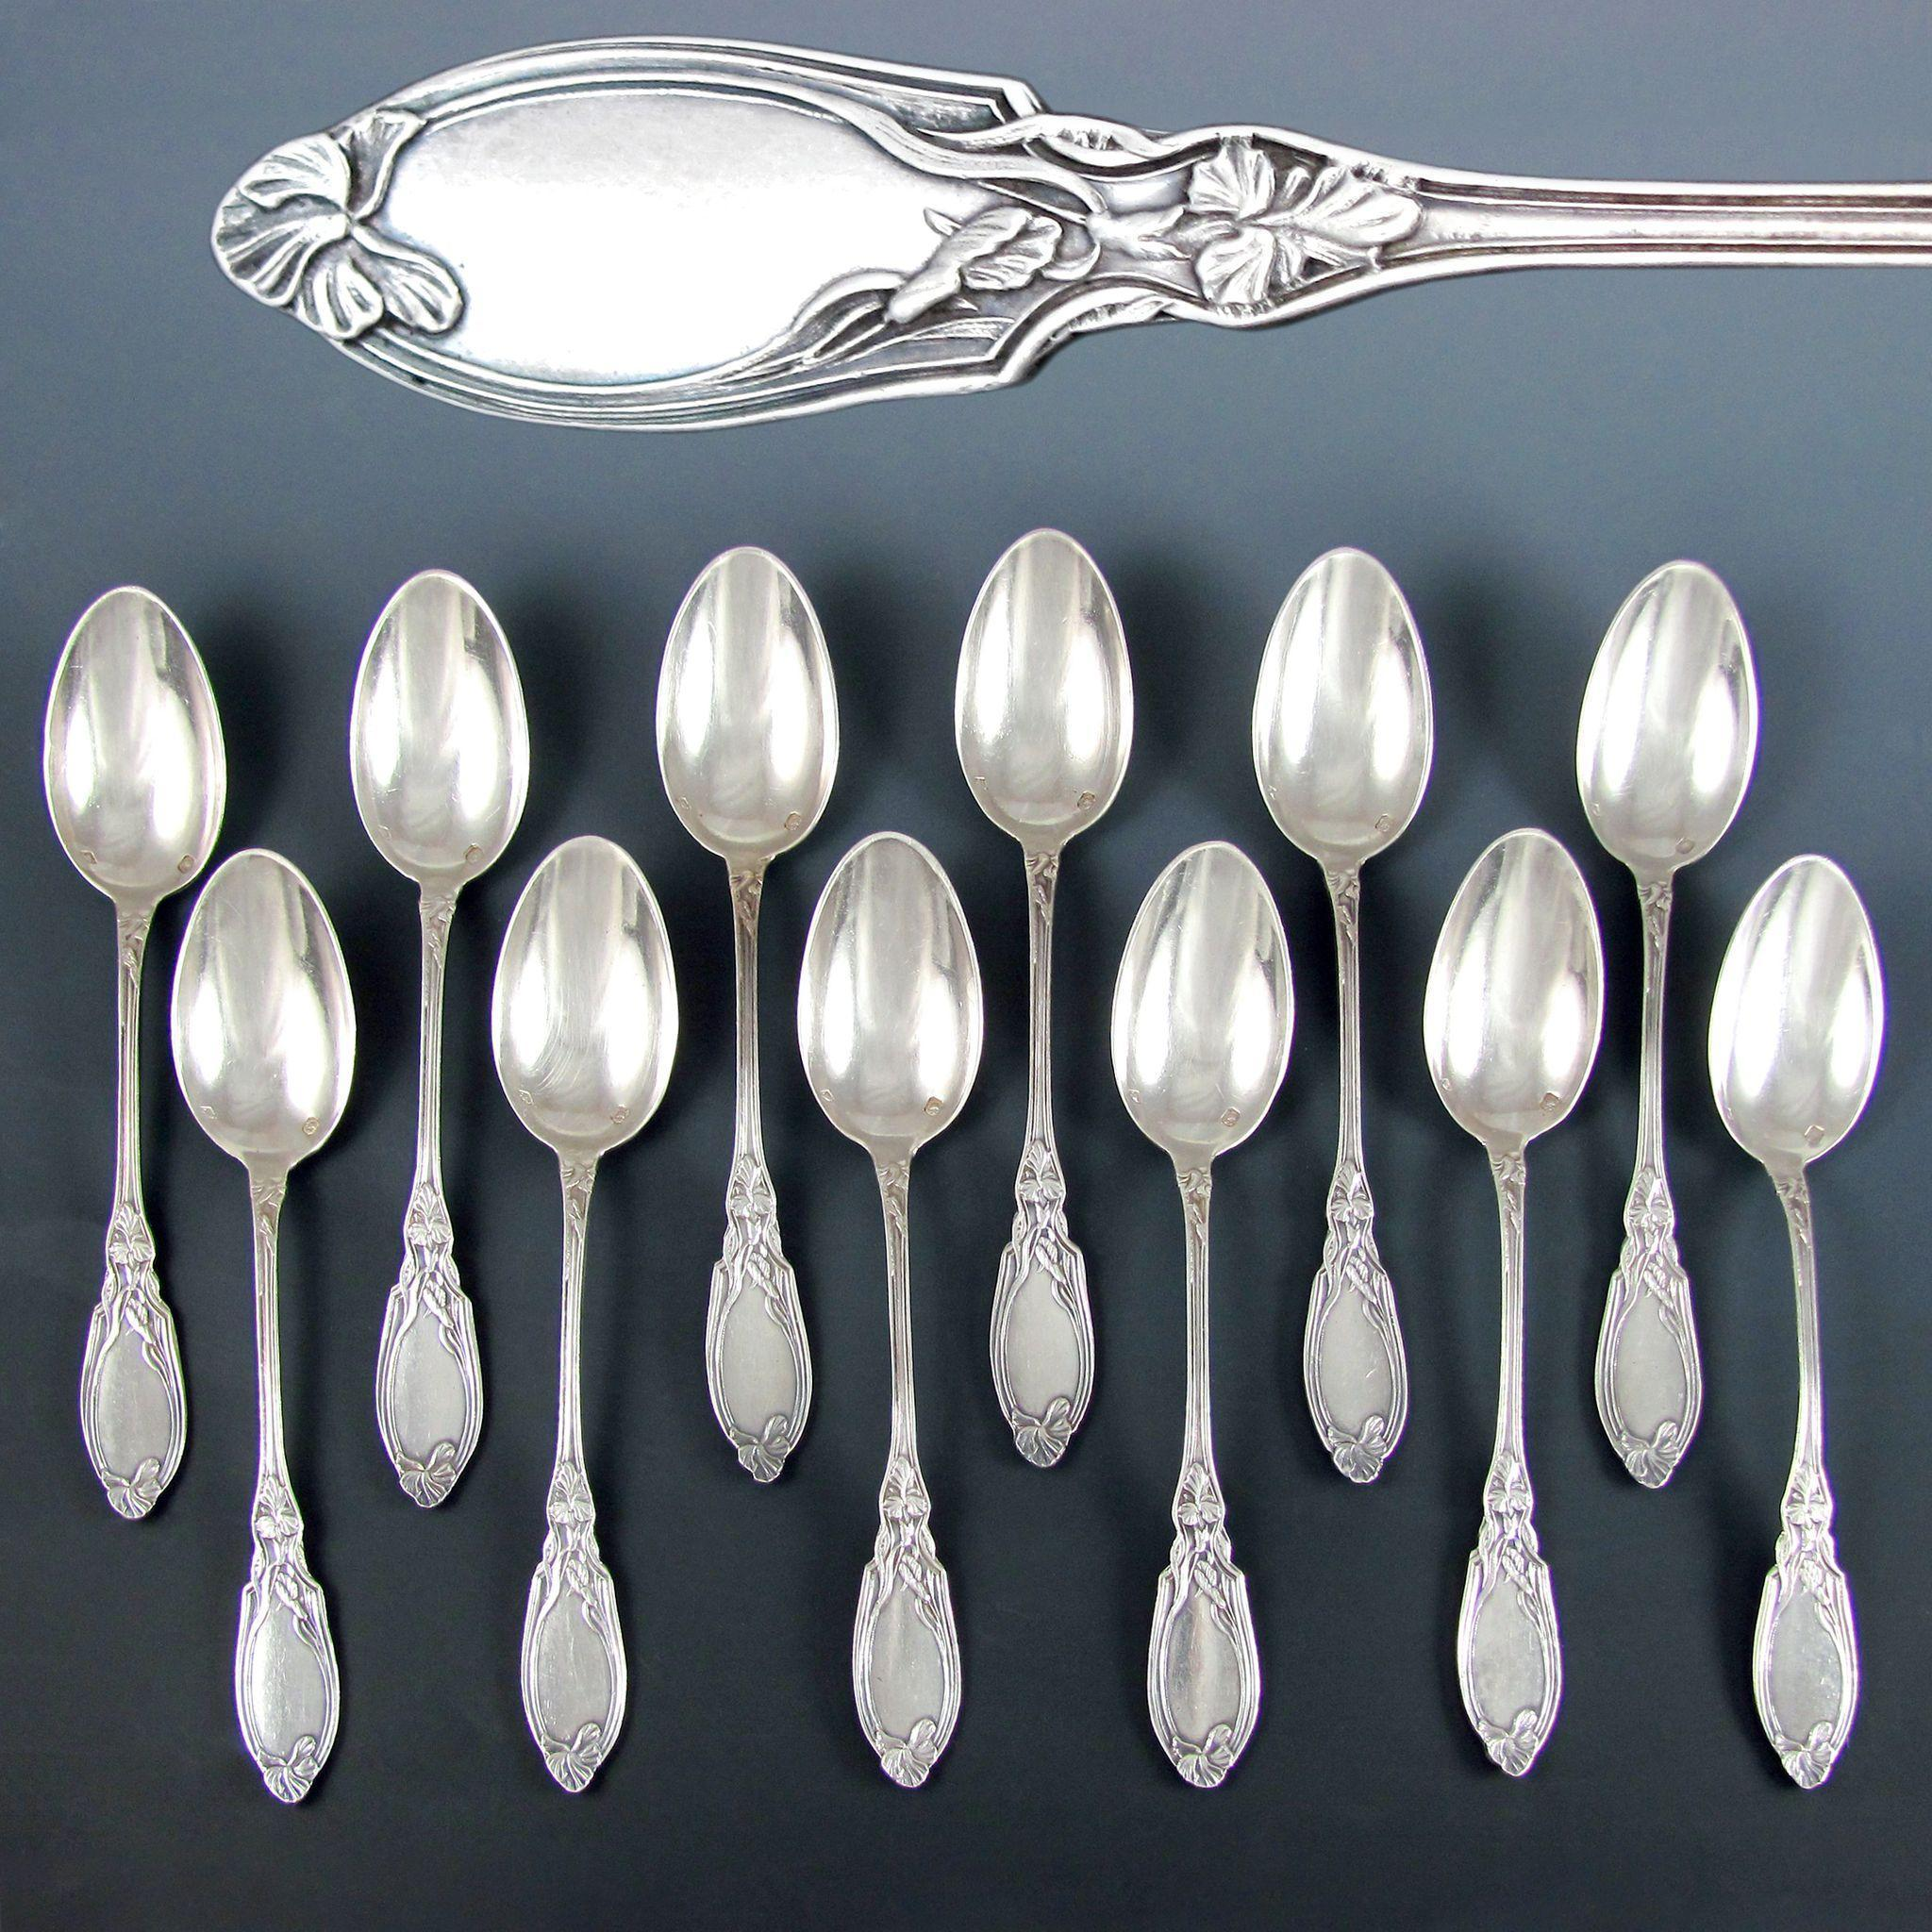 12 French Sterling Silver Art Nouveau Iris Pattern Tea / Coffee Spoons